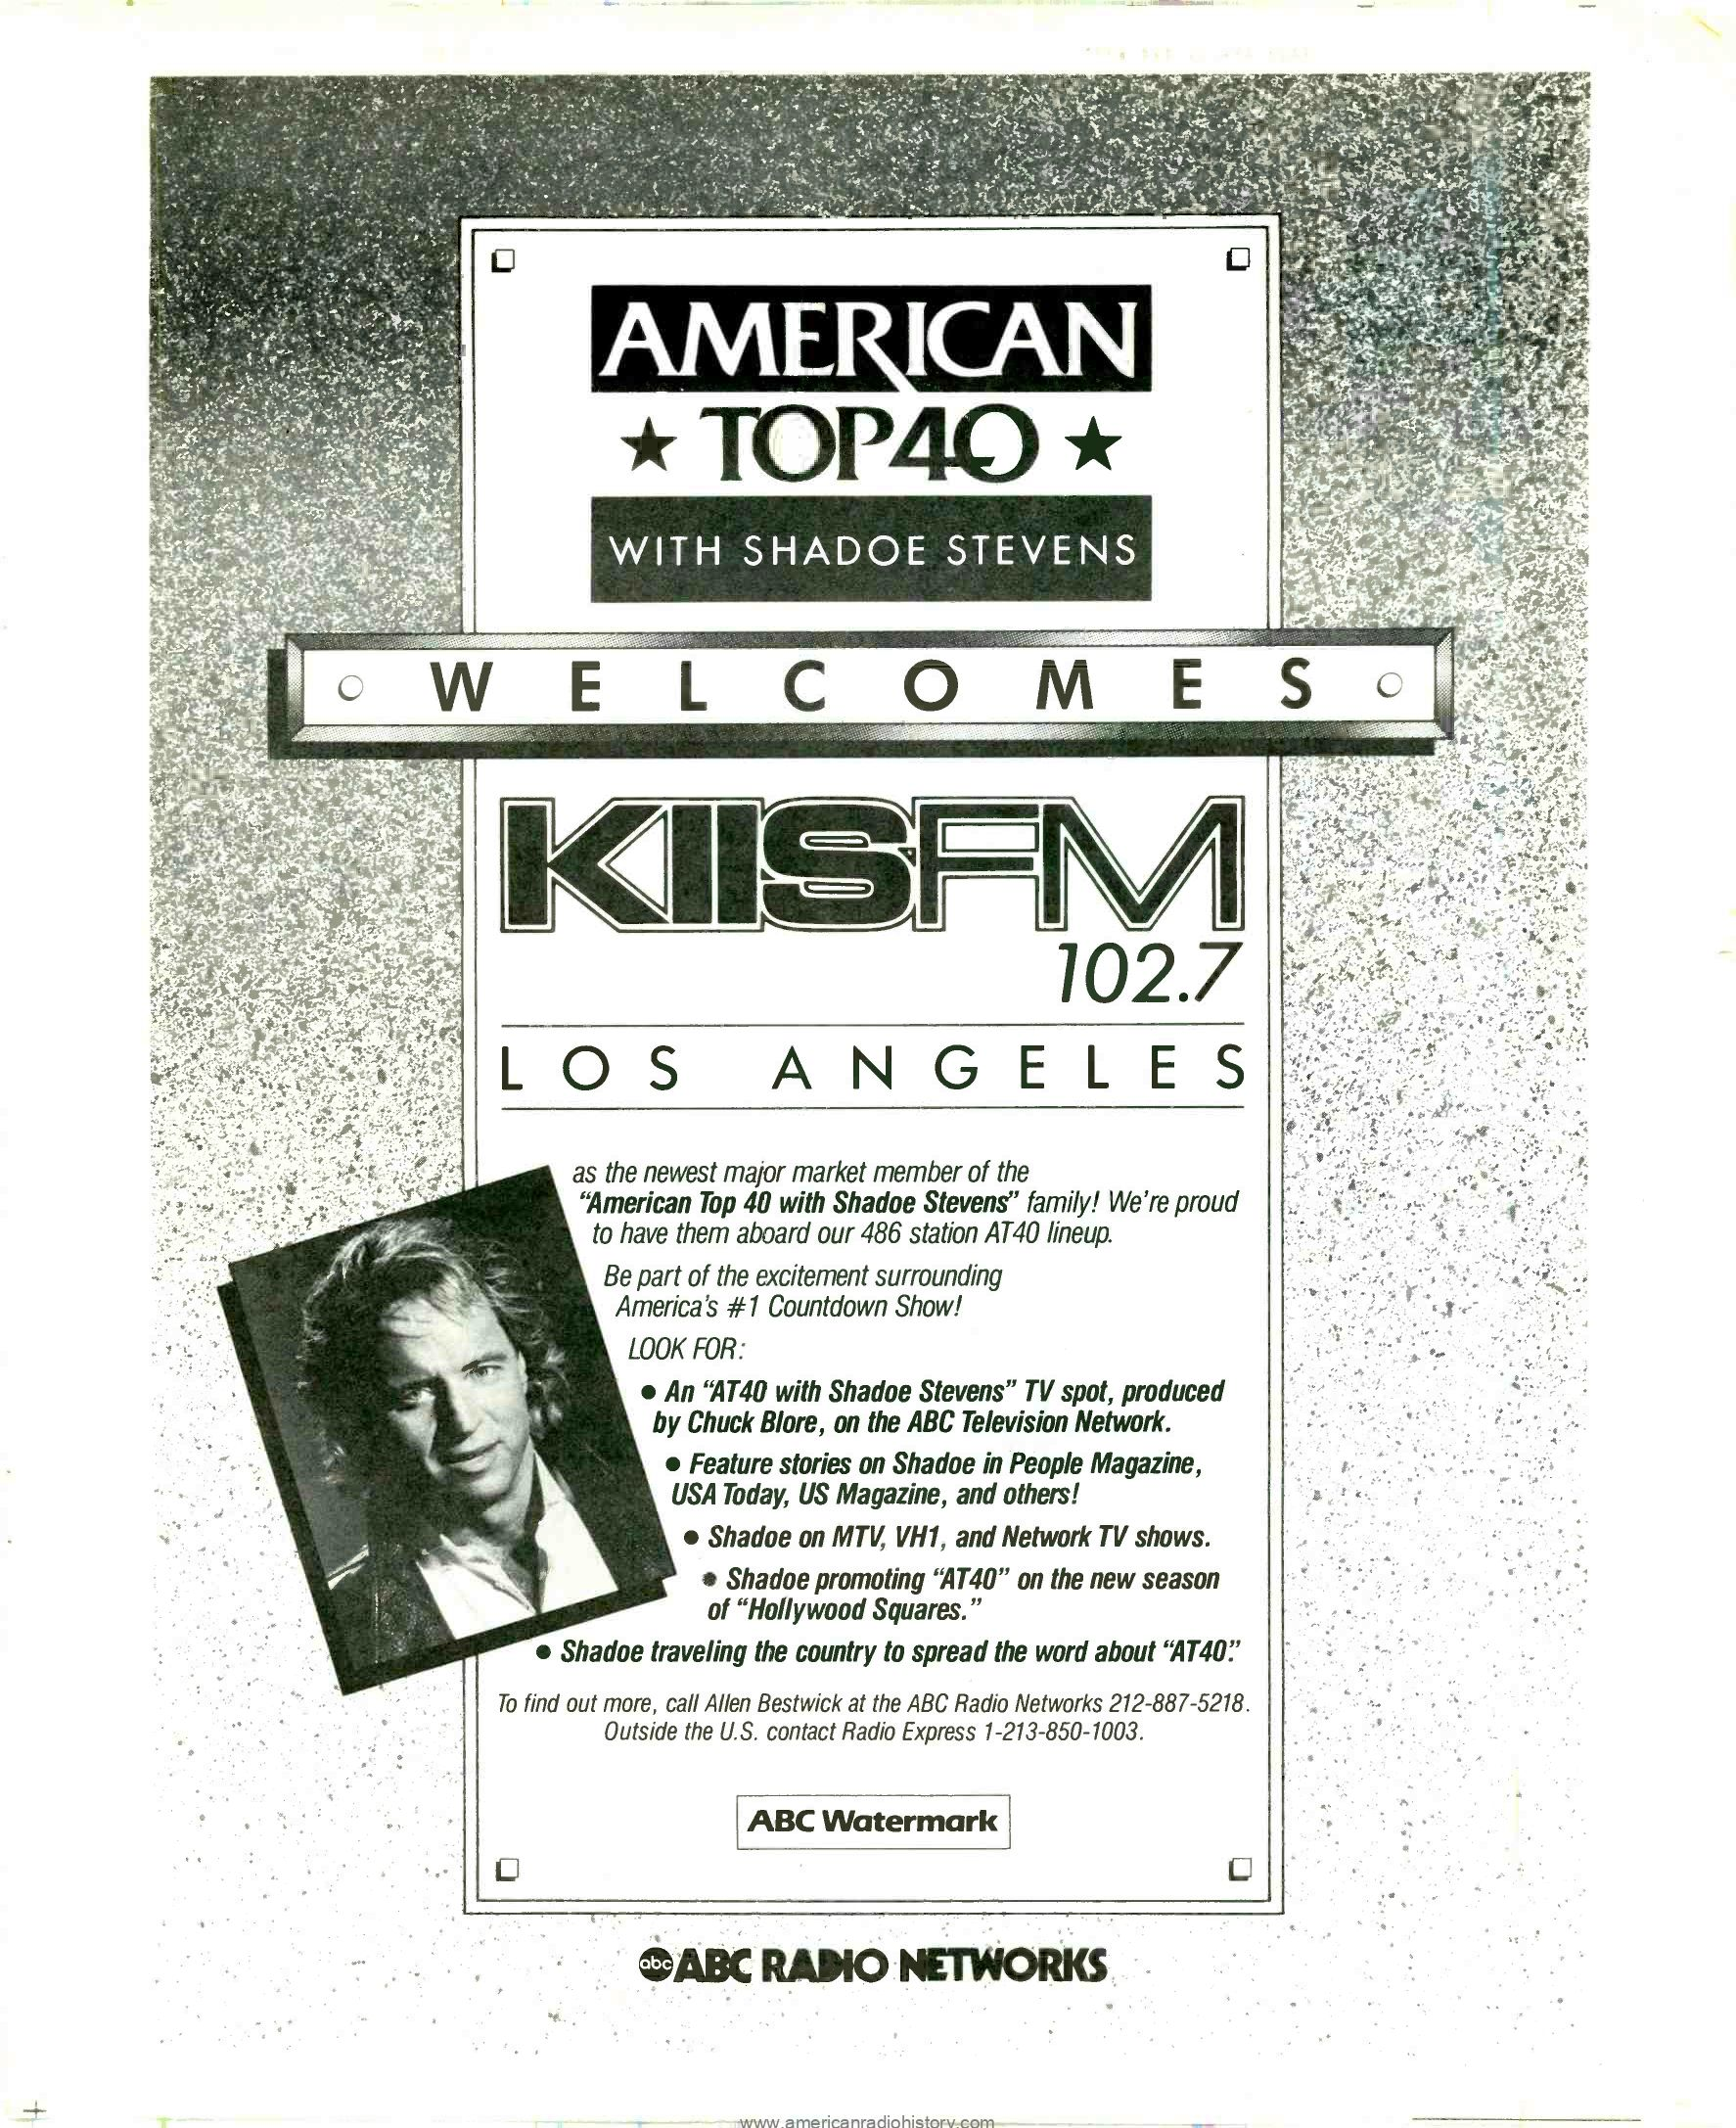 Pin by LINDA LEON on american top 40 | Casey kasem, Top 40